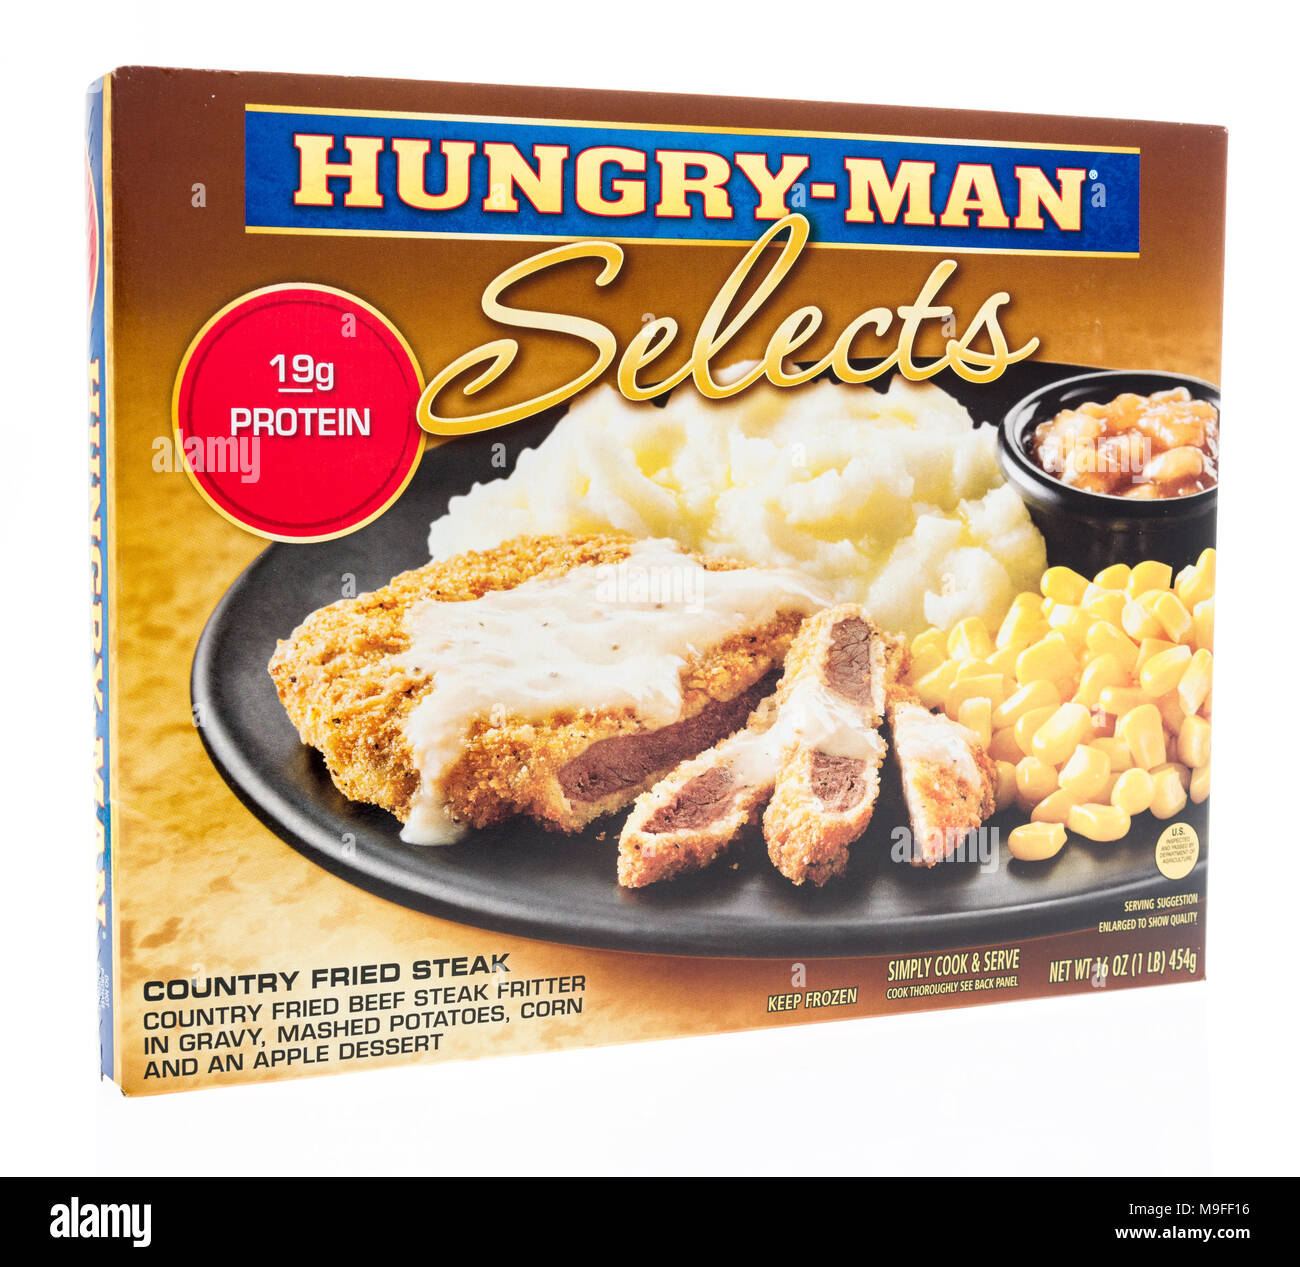 Winneconne, WI - 21 March 2018: A box of Hungry Man selects meal in country fried steak on an isolated background. - Stock Image